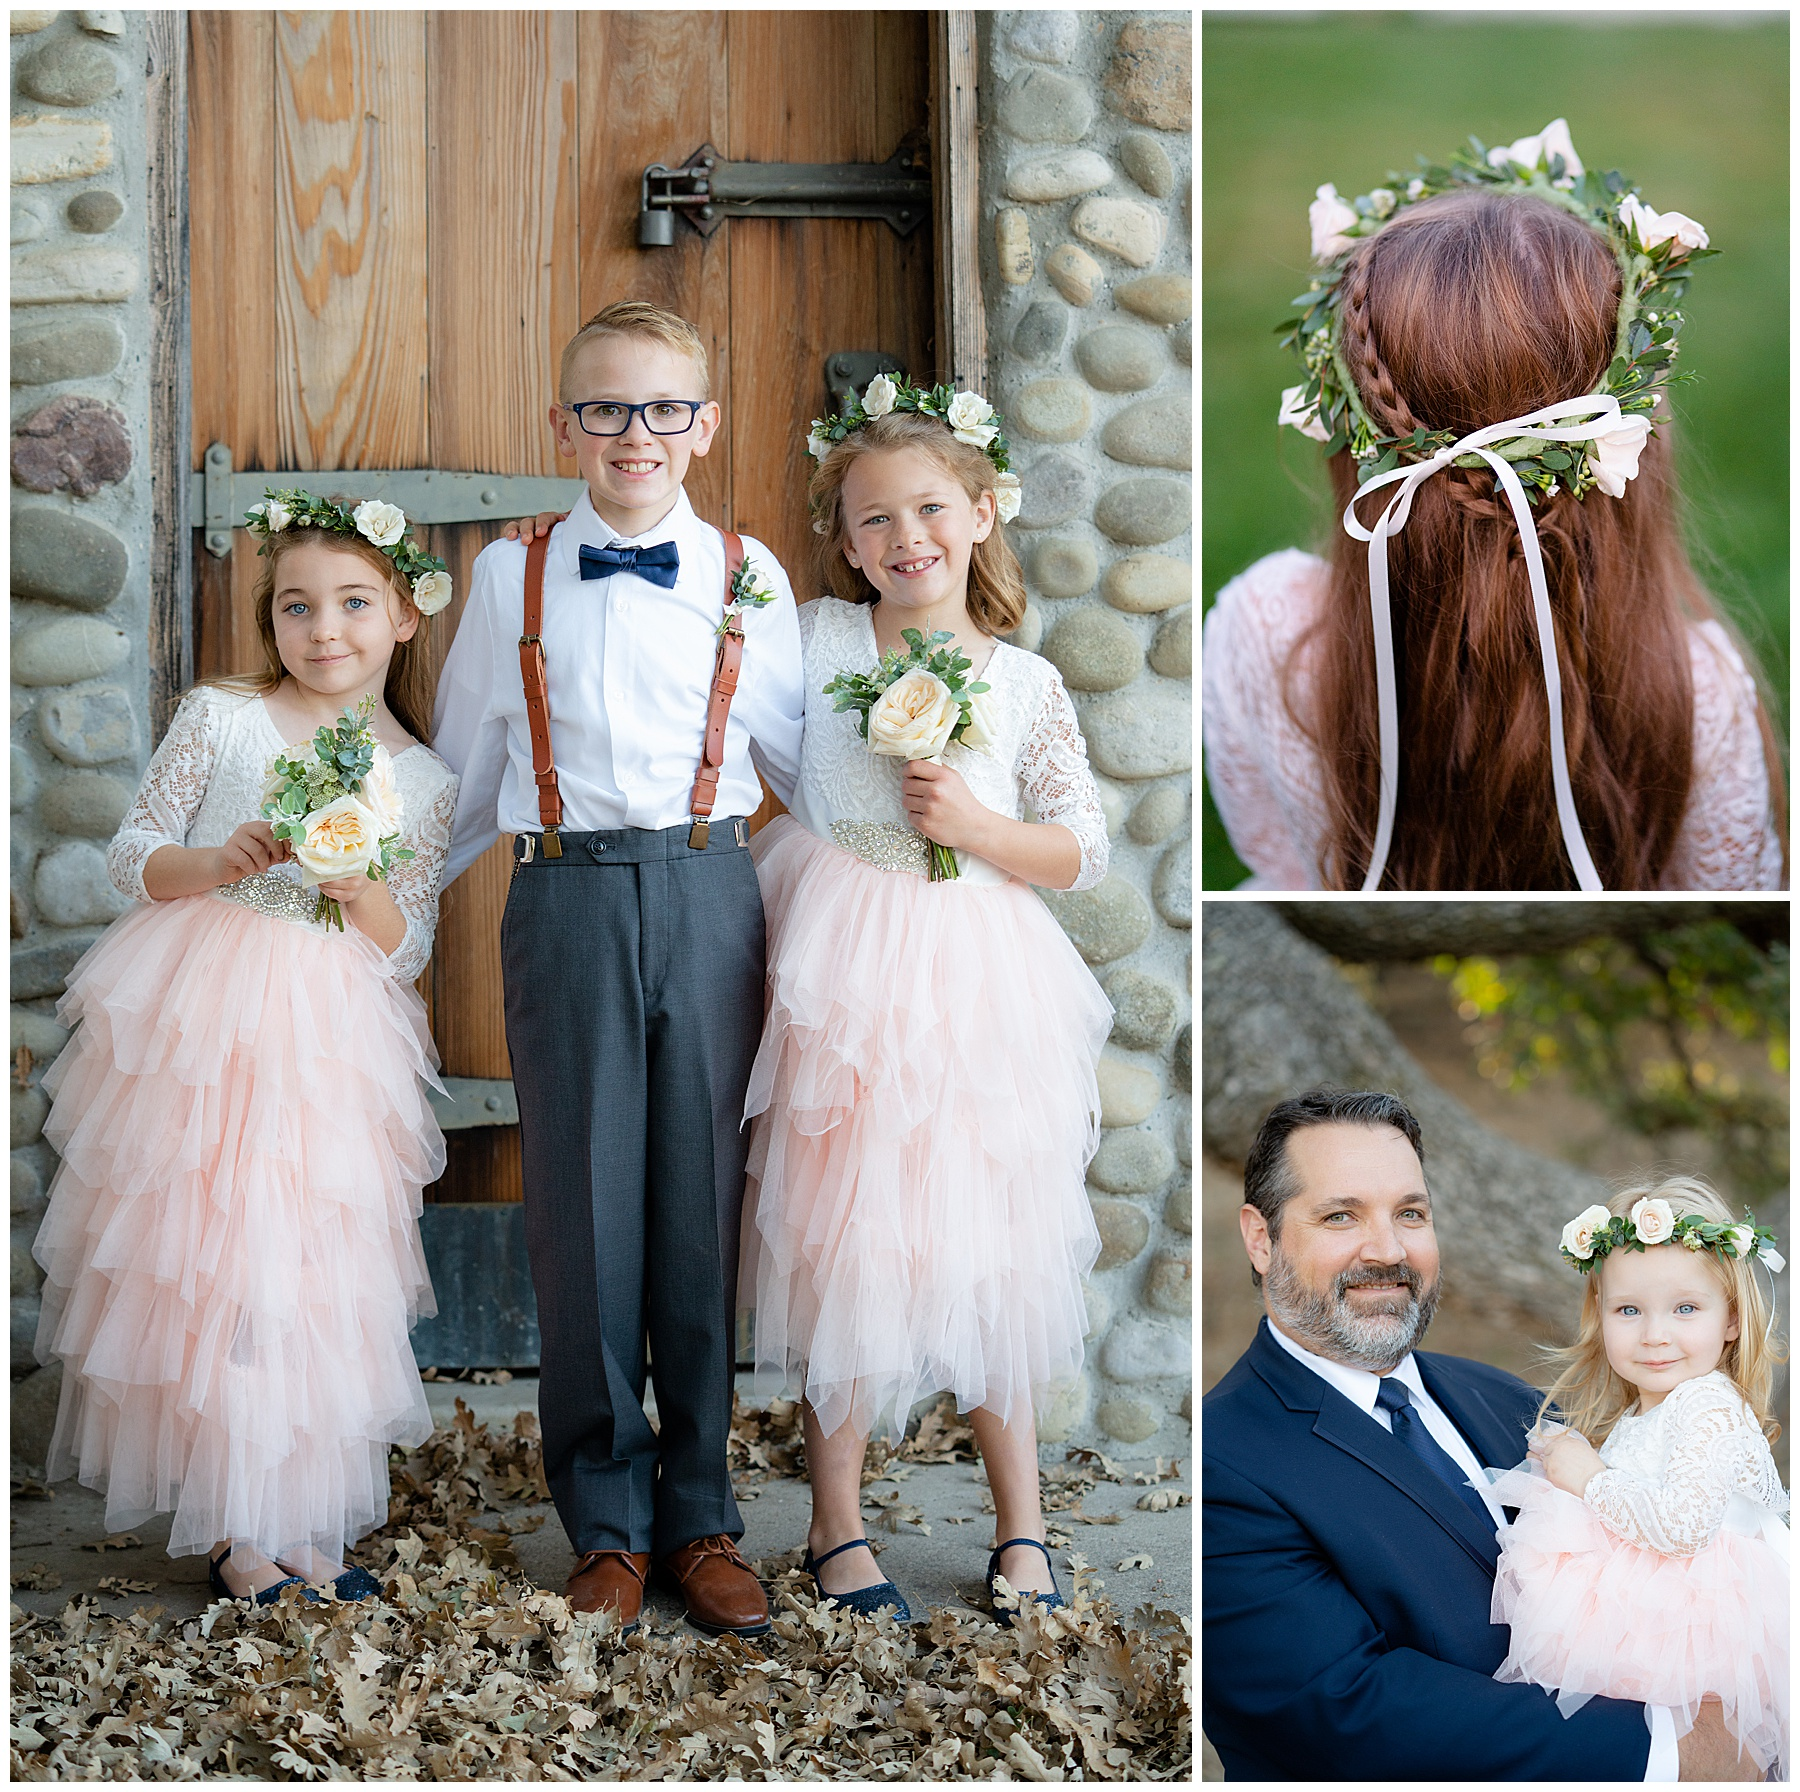 flower girl and ring bearer outfits